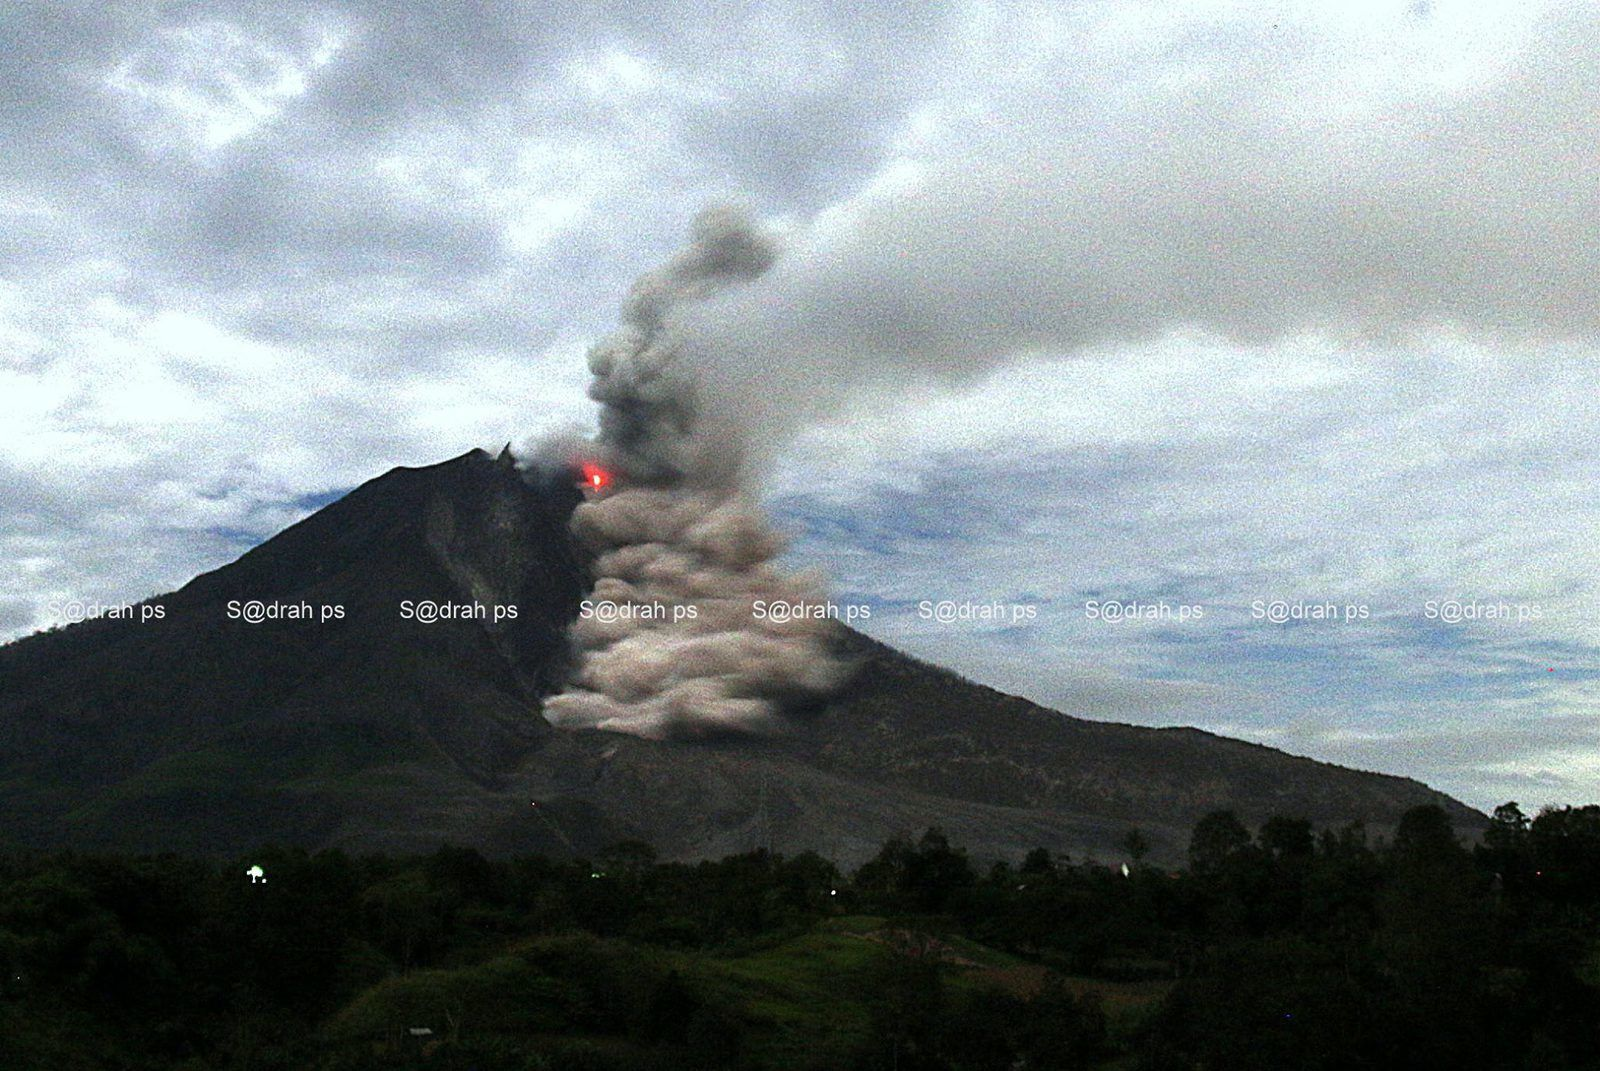 .Sinabung -  pyroclastic flow on 08.25.2015 / 10:13 p.m. - photo S@drah ps